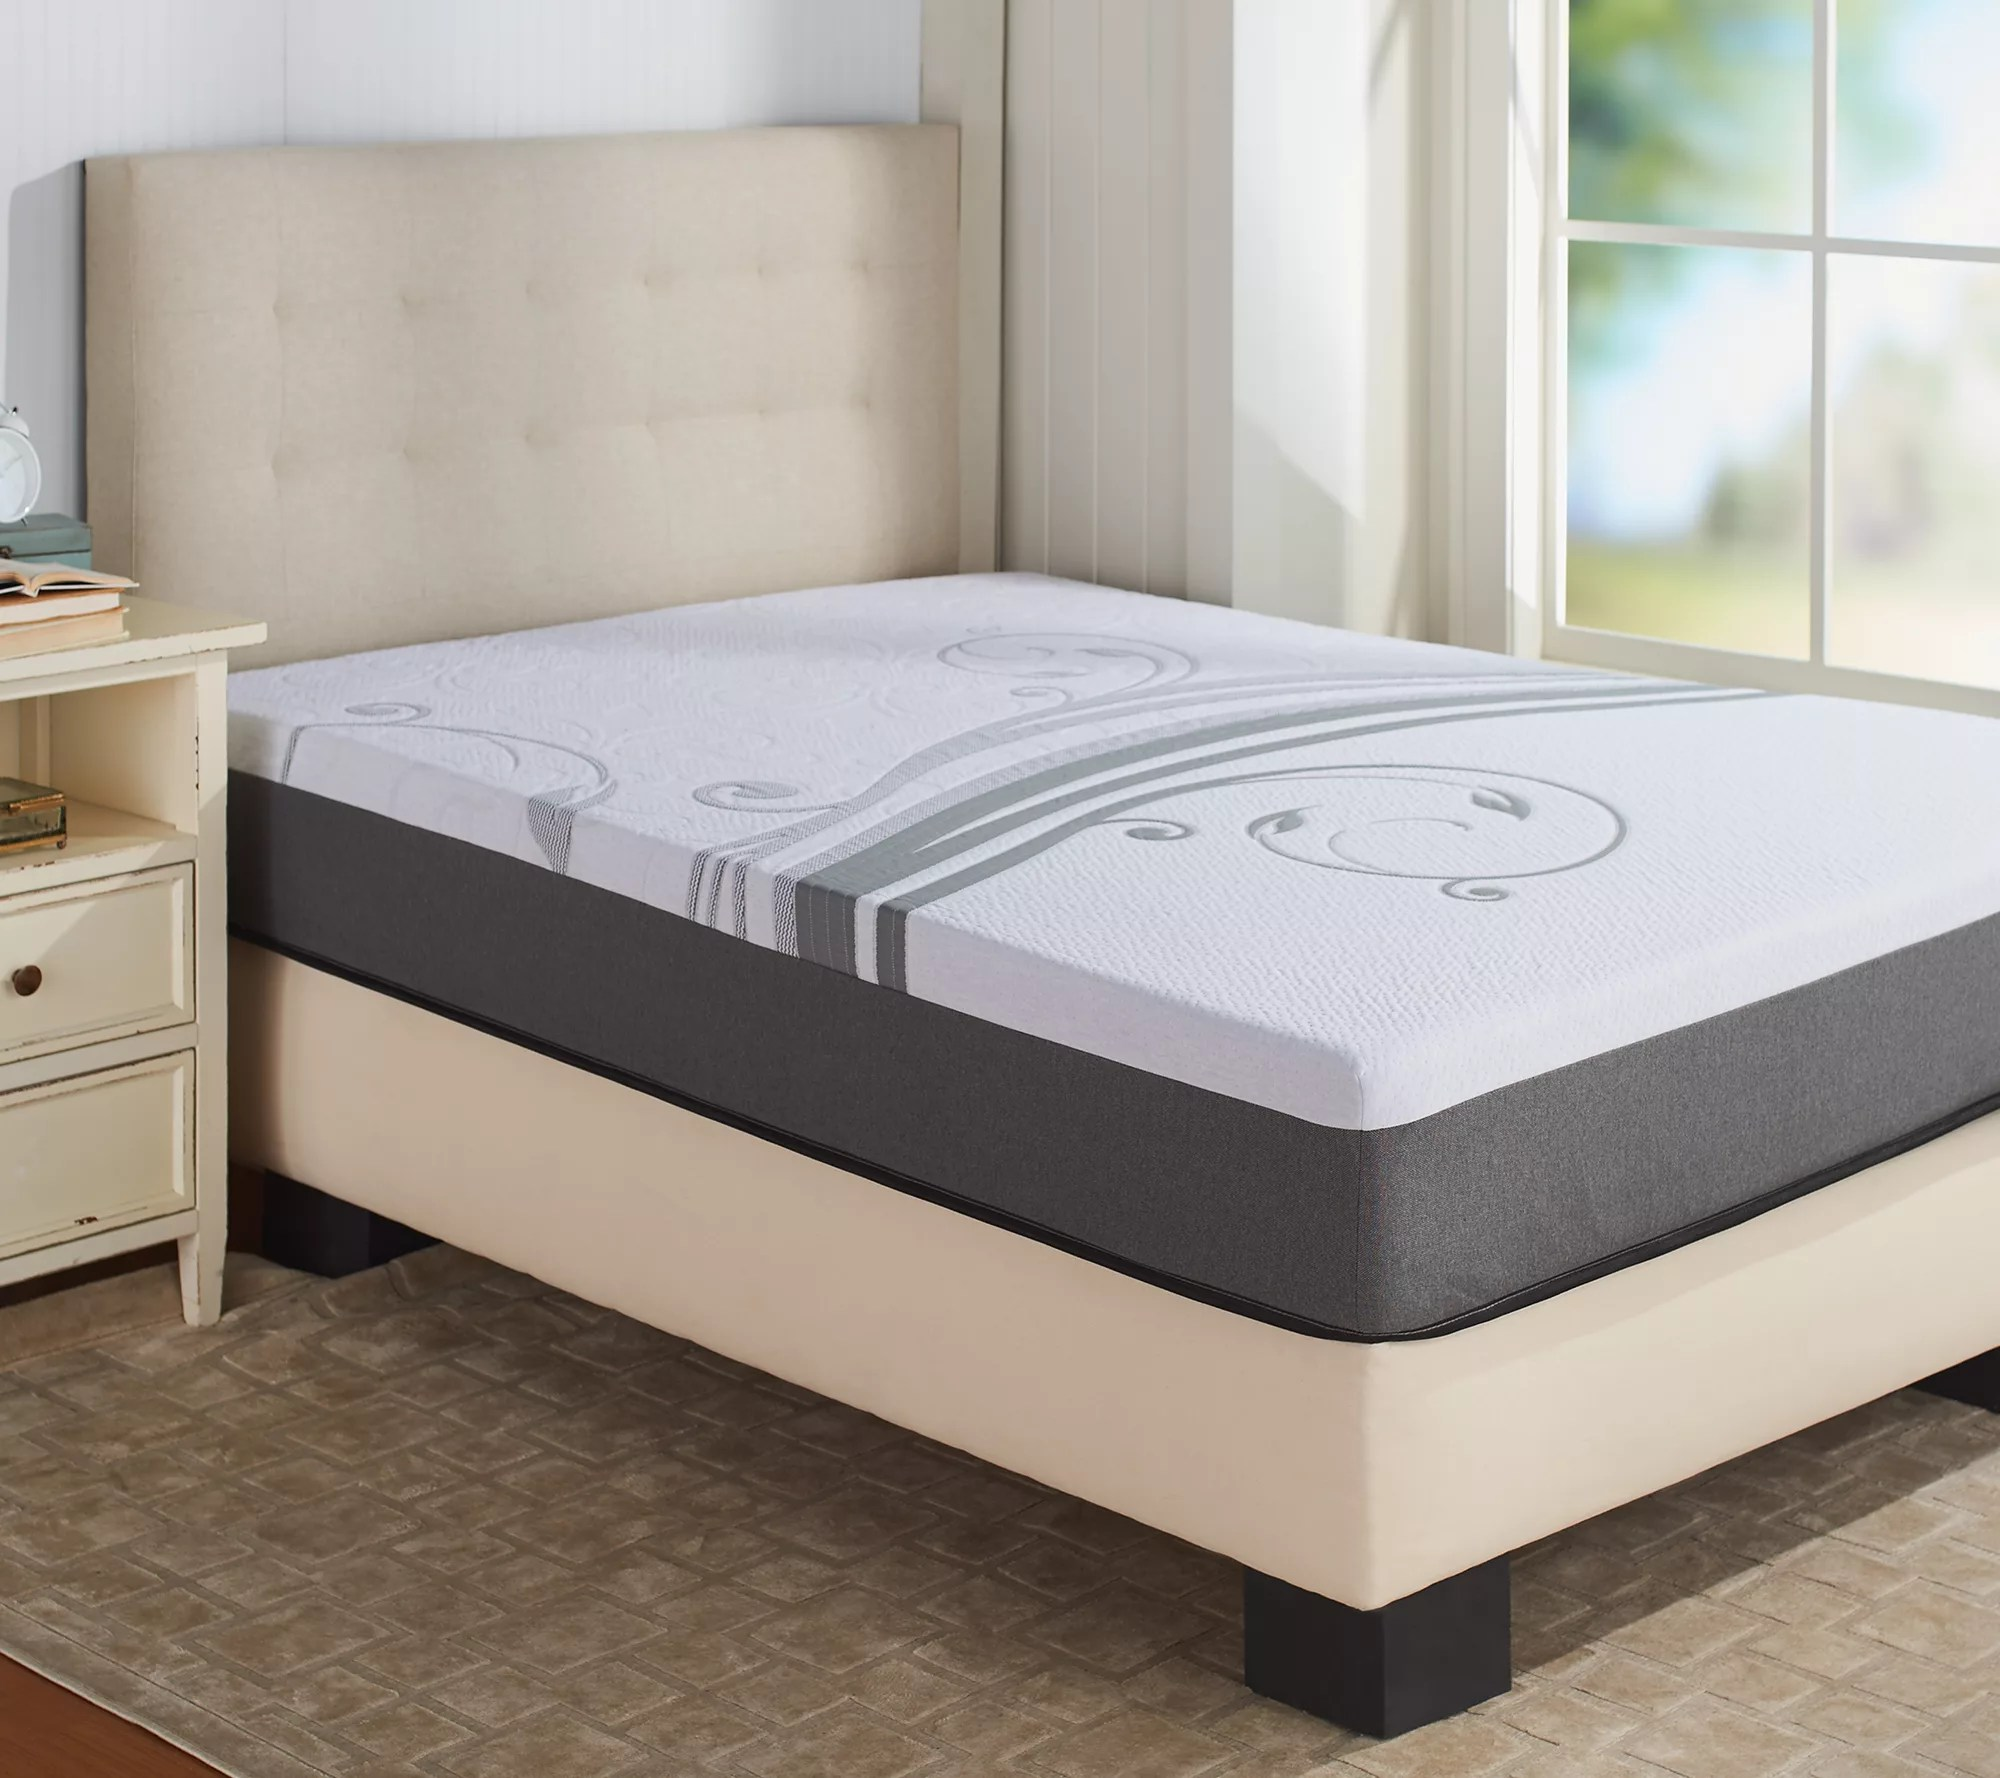 Northern Nights Supreme 10  Full Mattress   Page 1     QVC com Northern Nights Supreme 10  Full Mattress